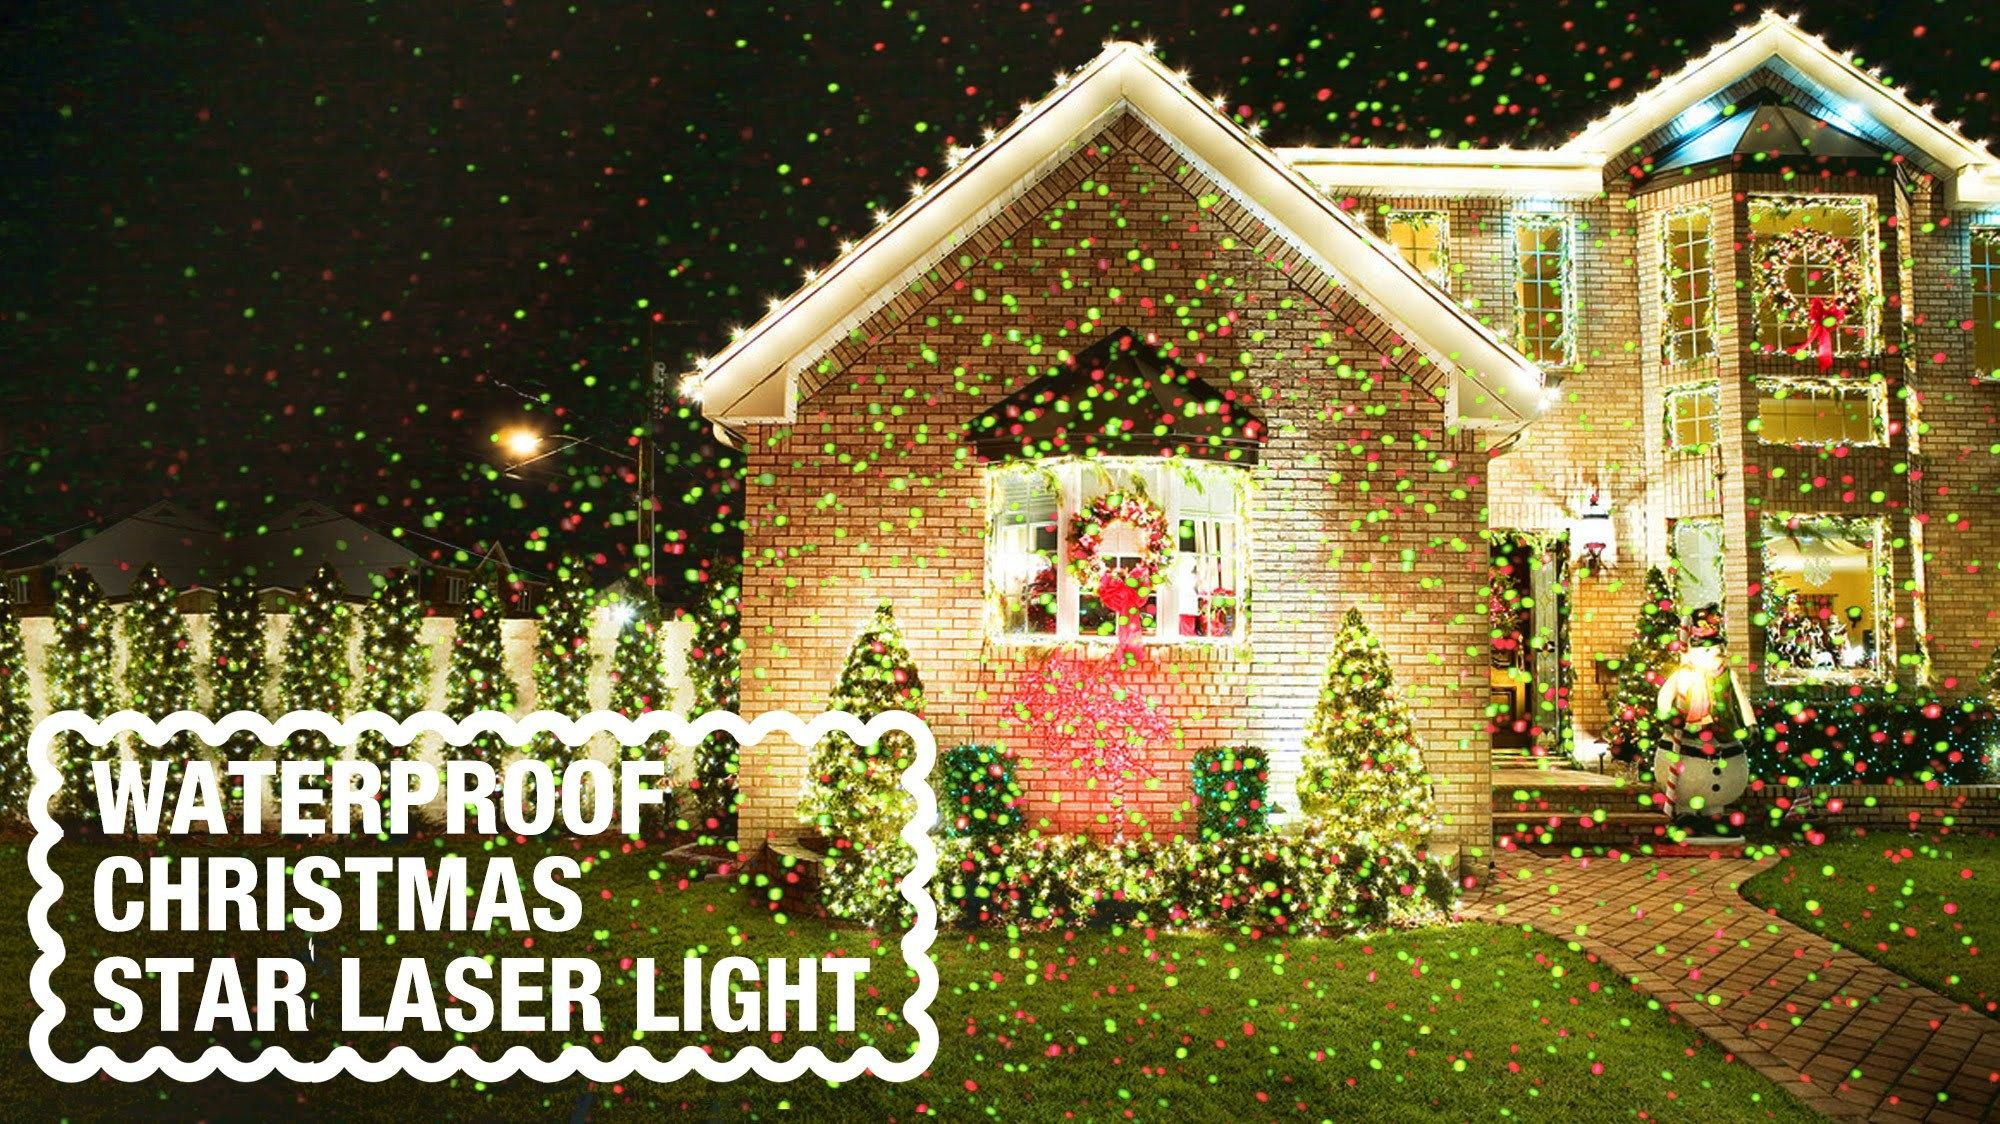 LEDMall launches new RGB Outdoor Laser Garden and Christmas Lights ...